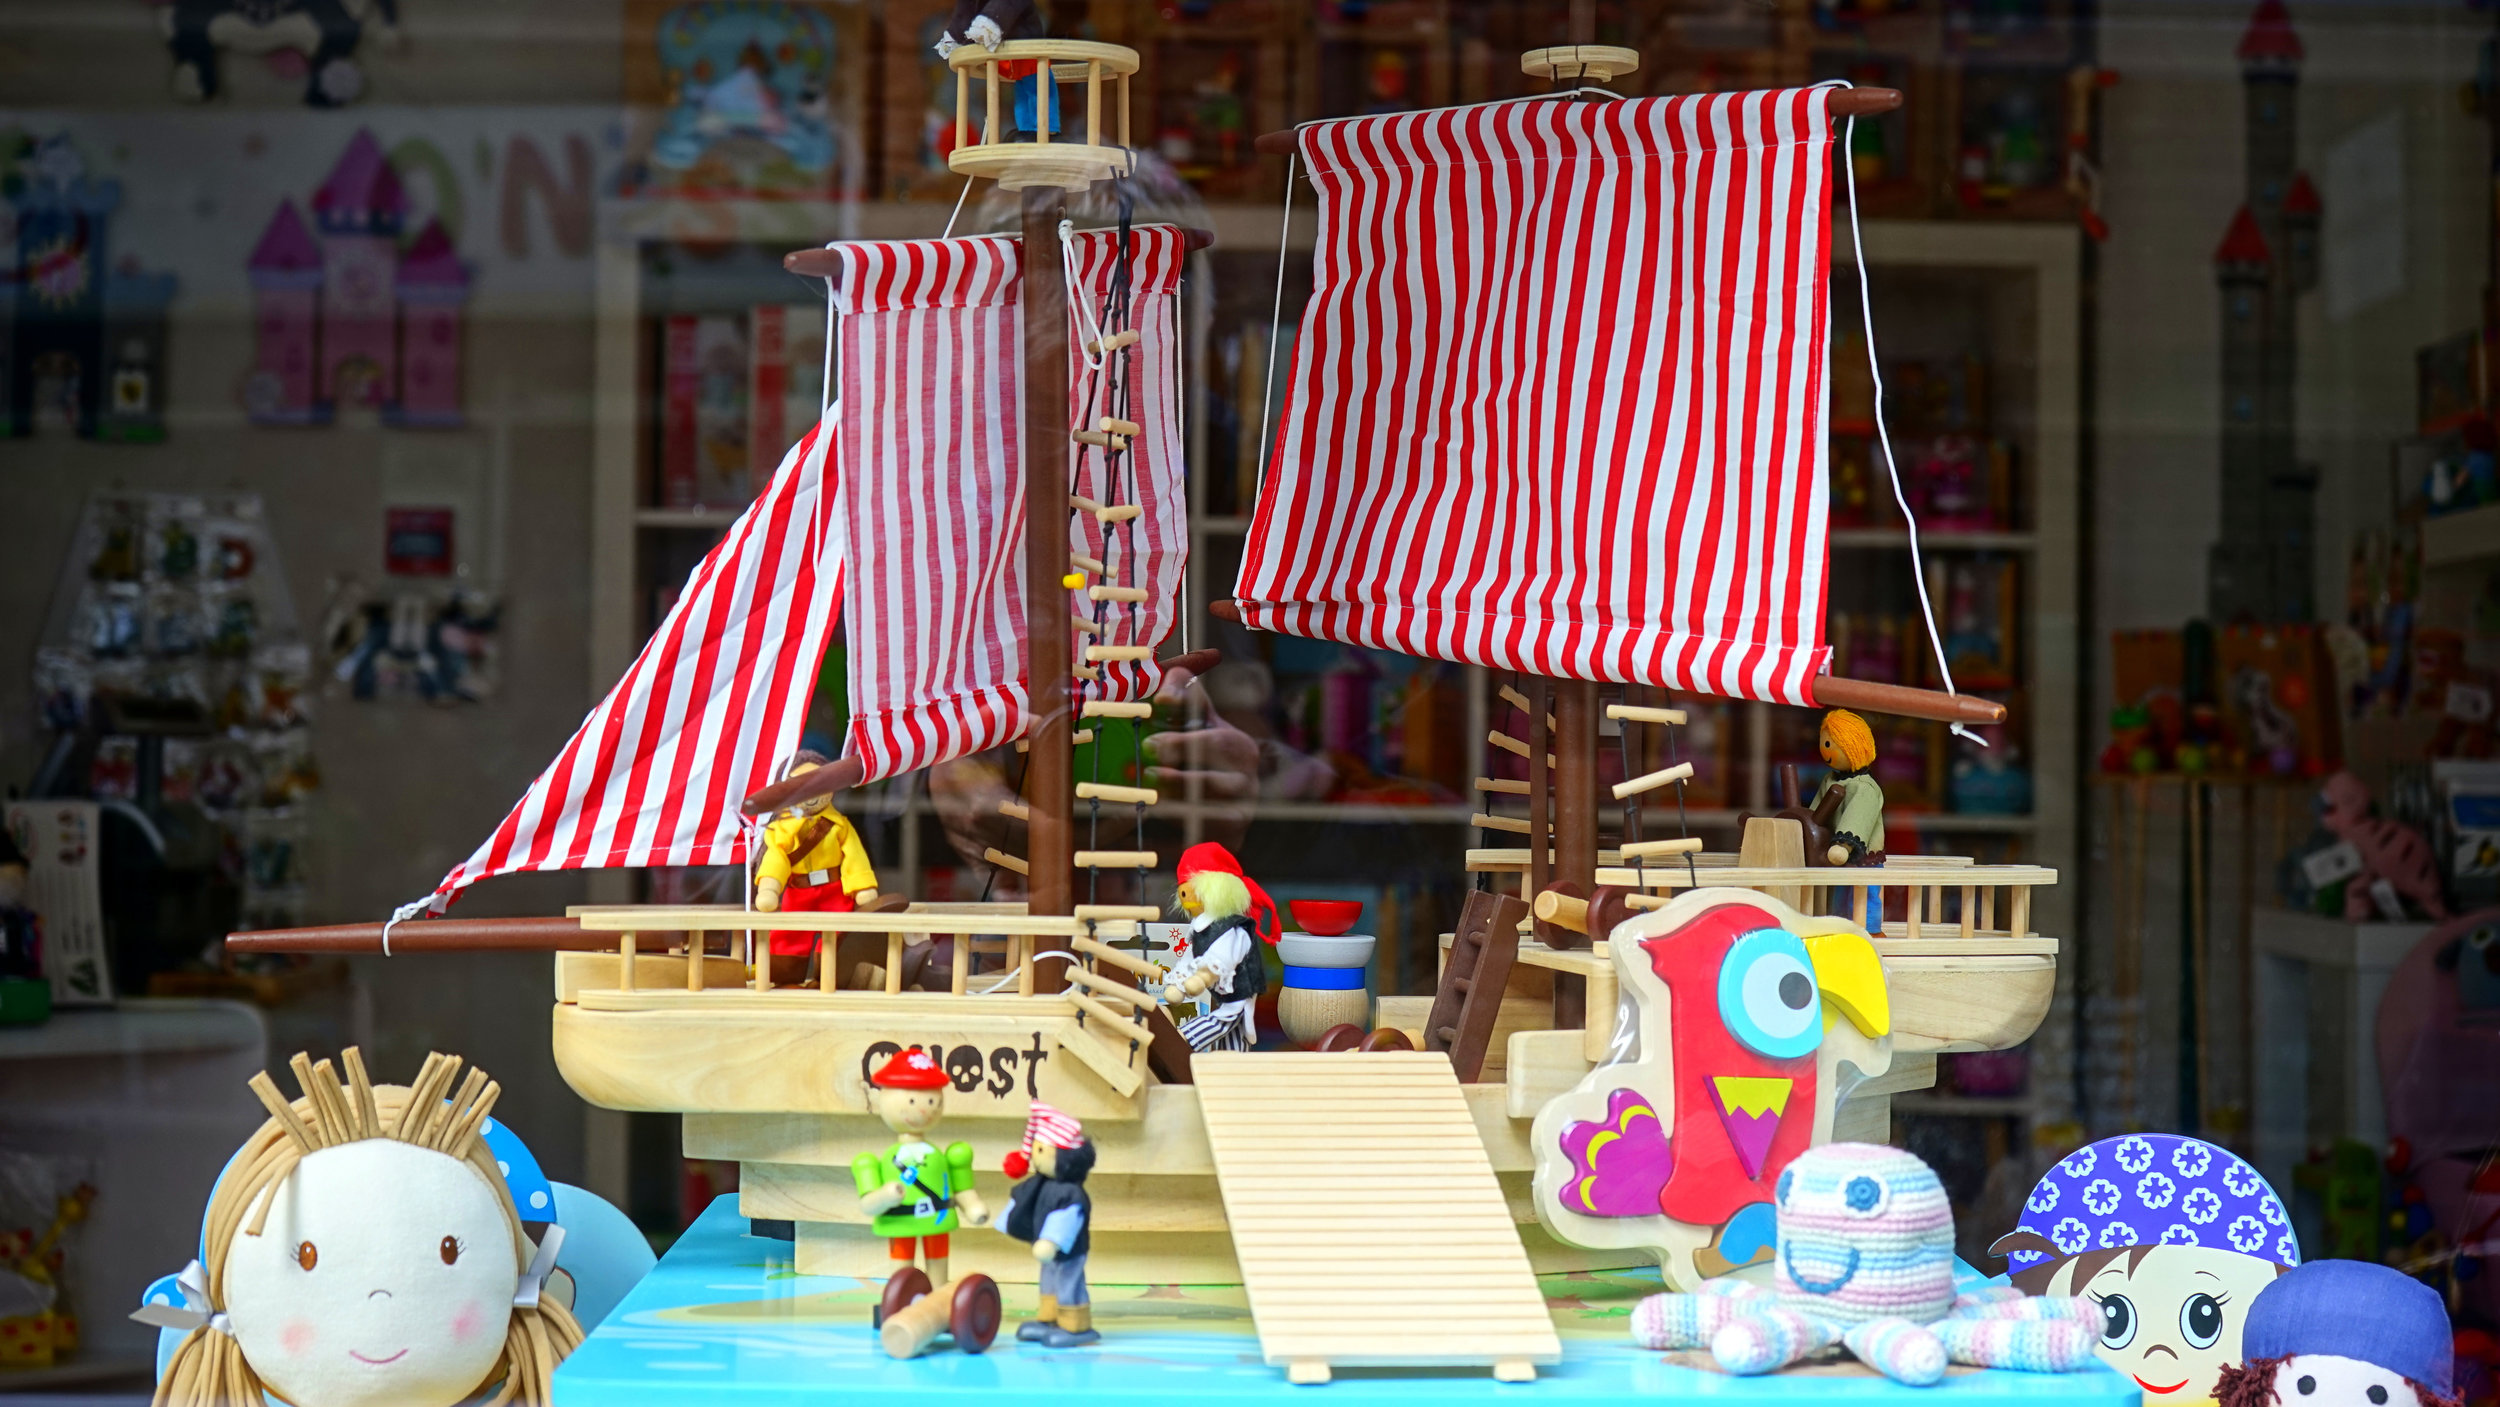 pirate ship toys.jpg